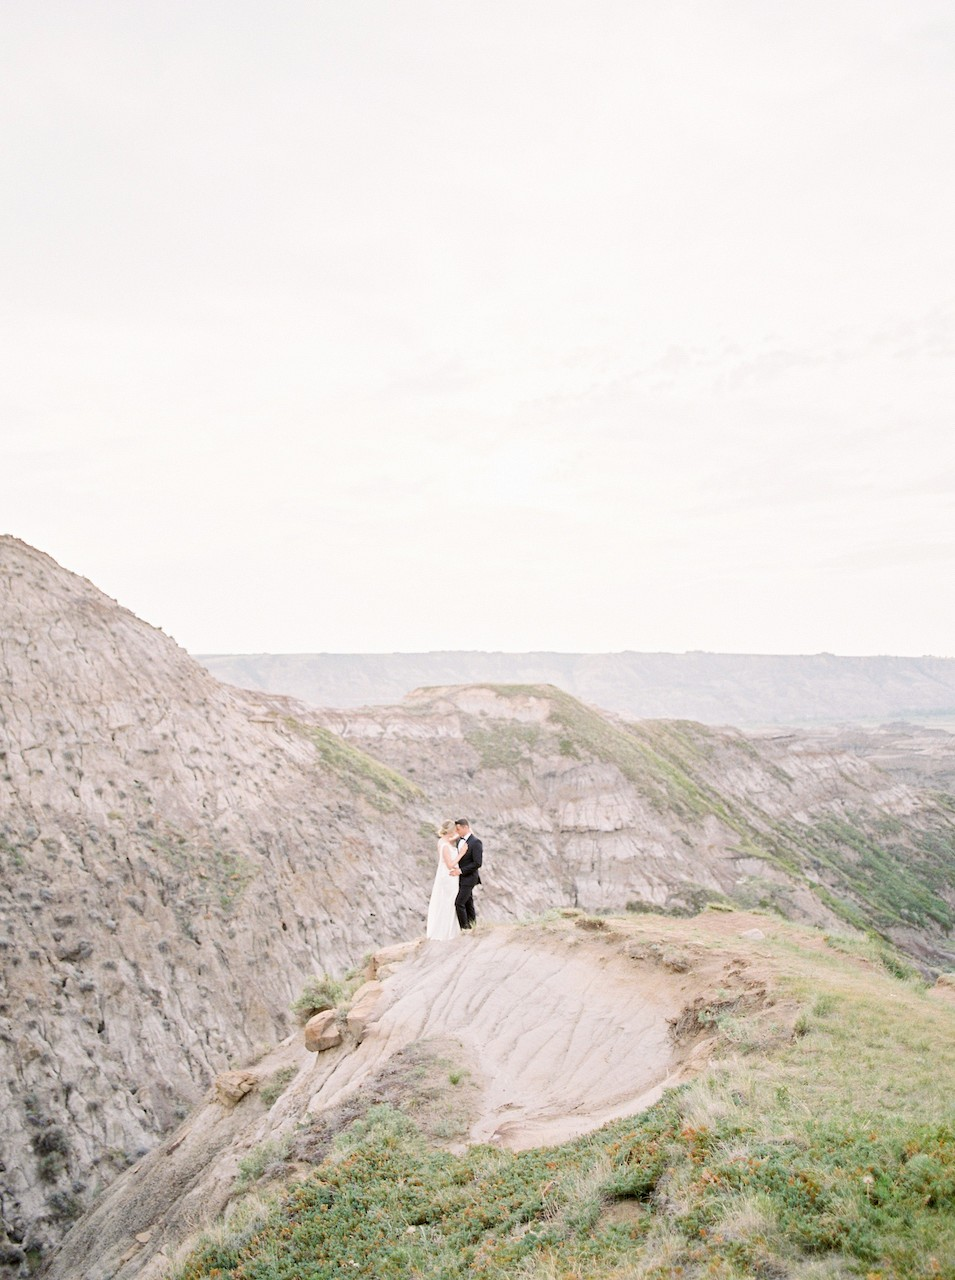 Ethereal Wedding Style in the Desert